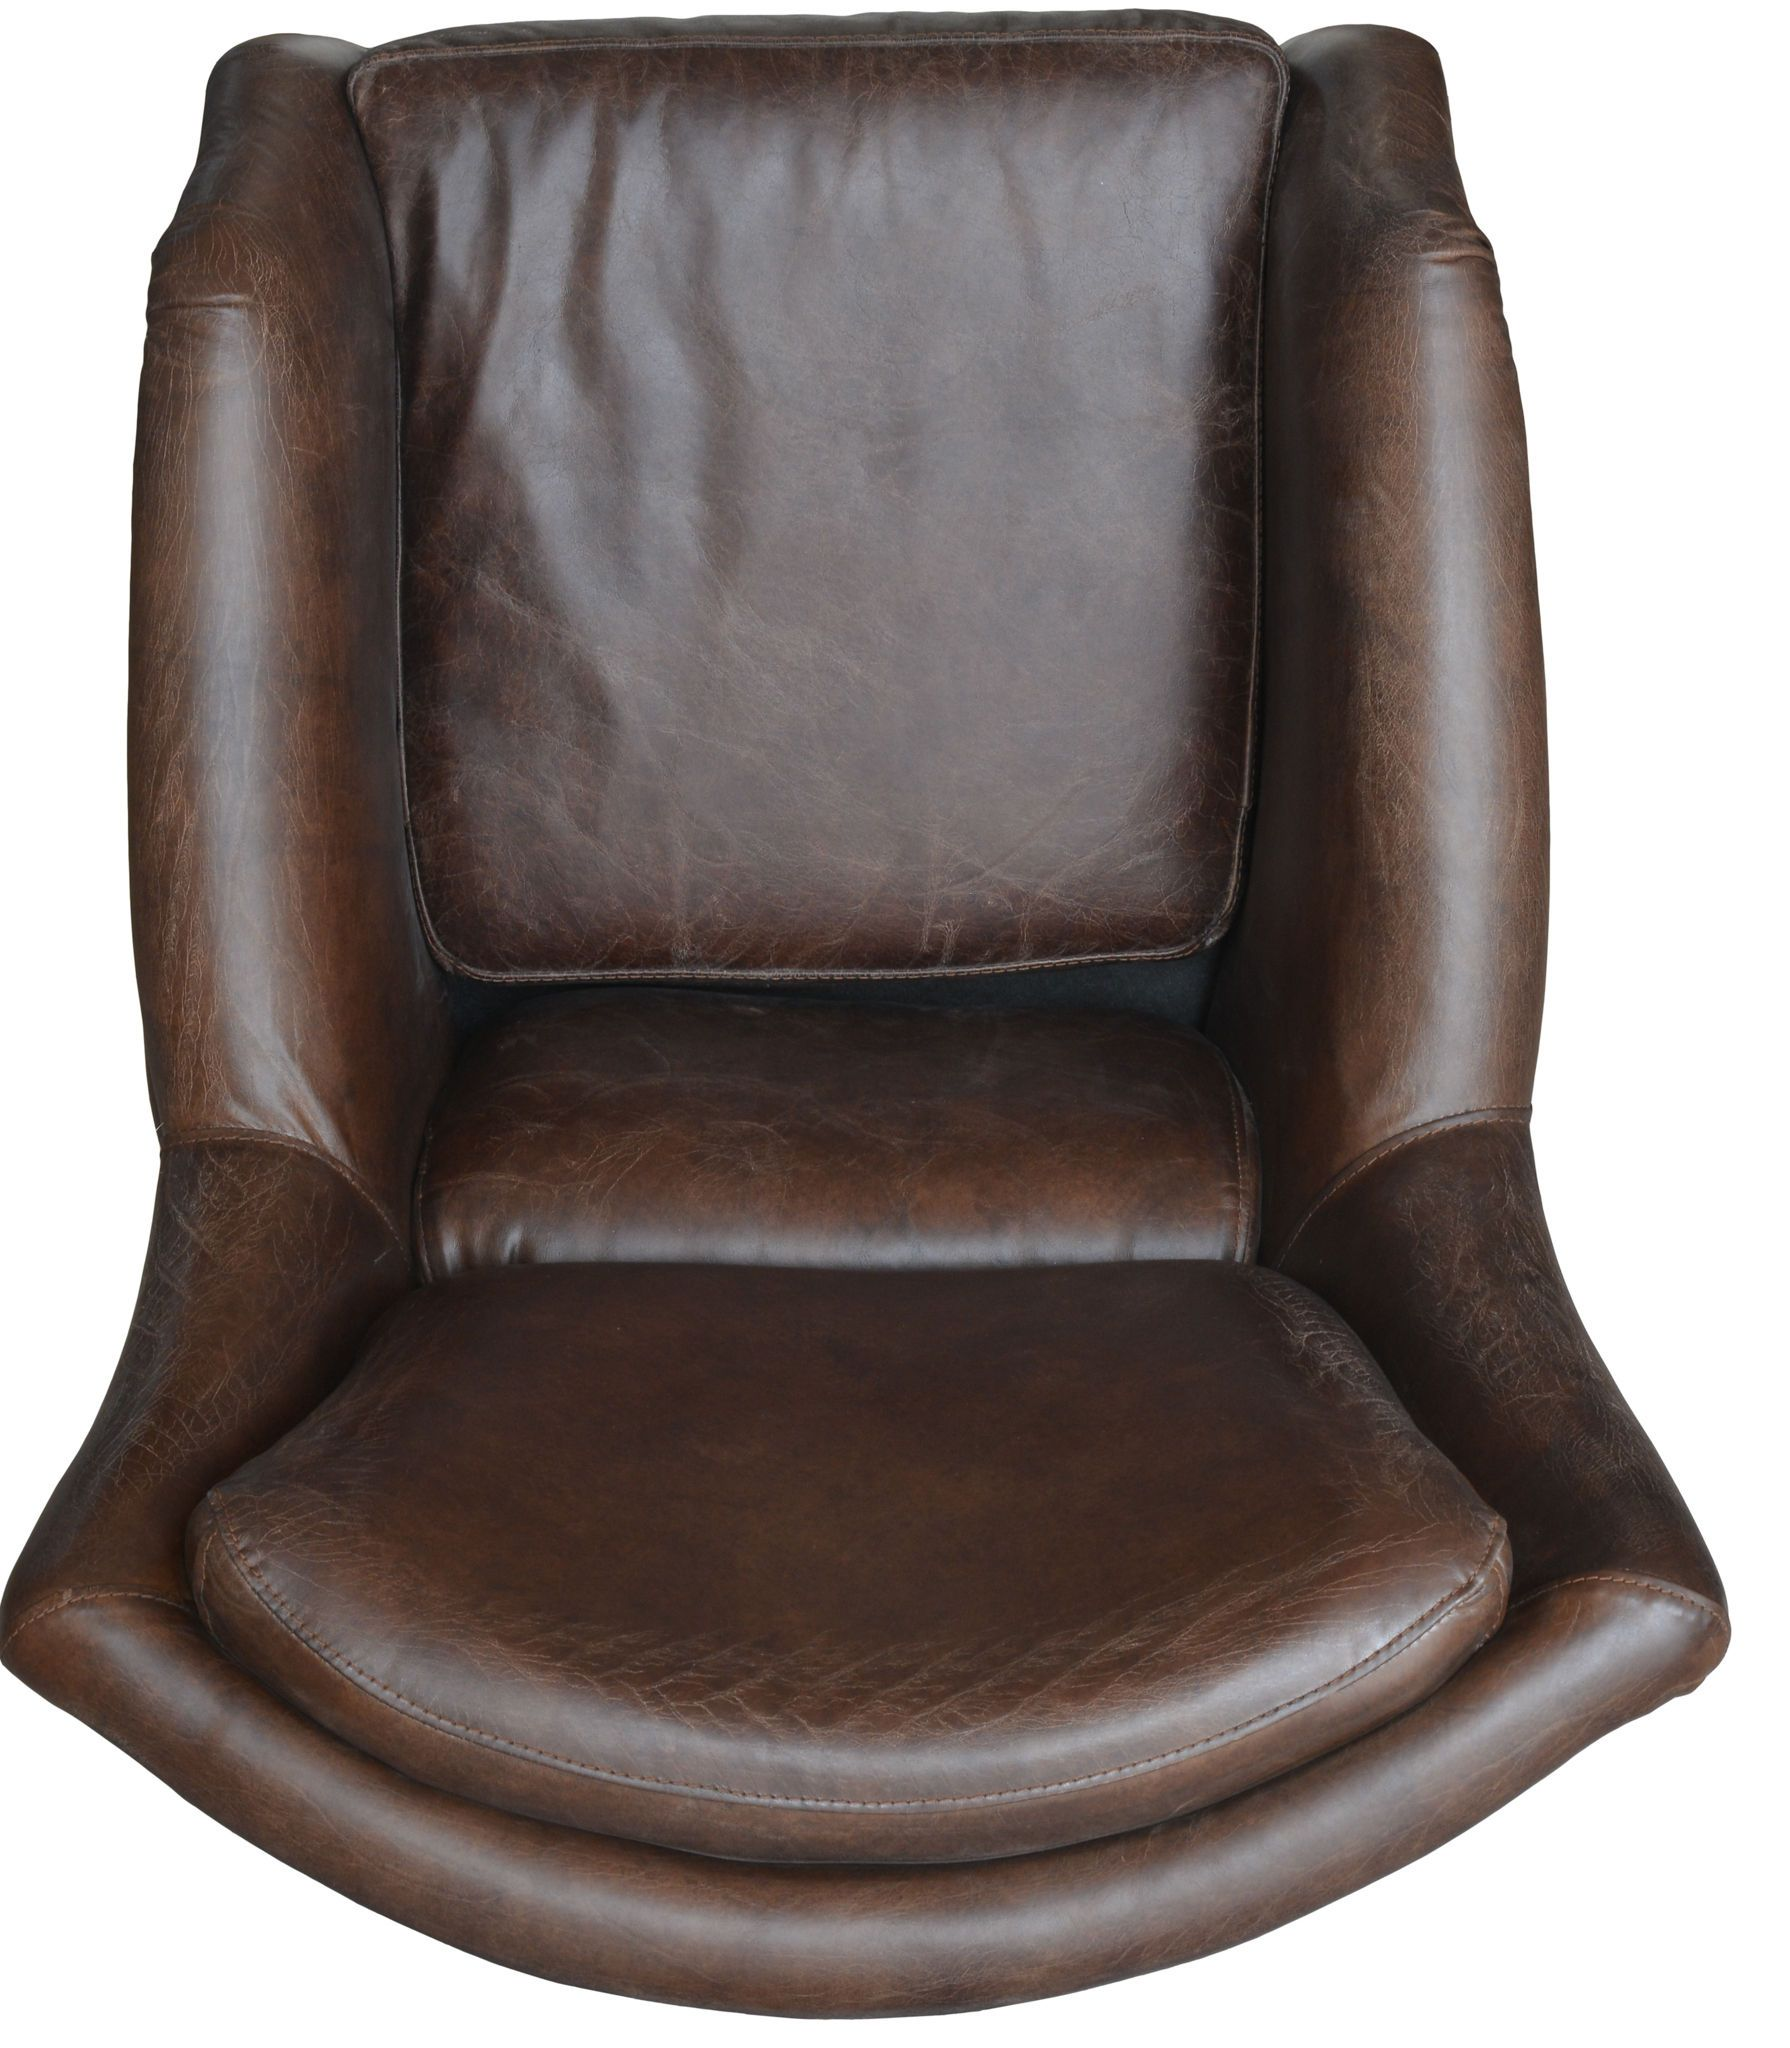 Best Top View Lounge Chair Top View Arm Xqnlinfo Lounge 400 x 300